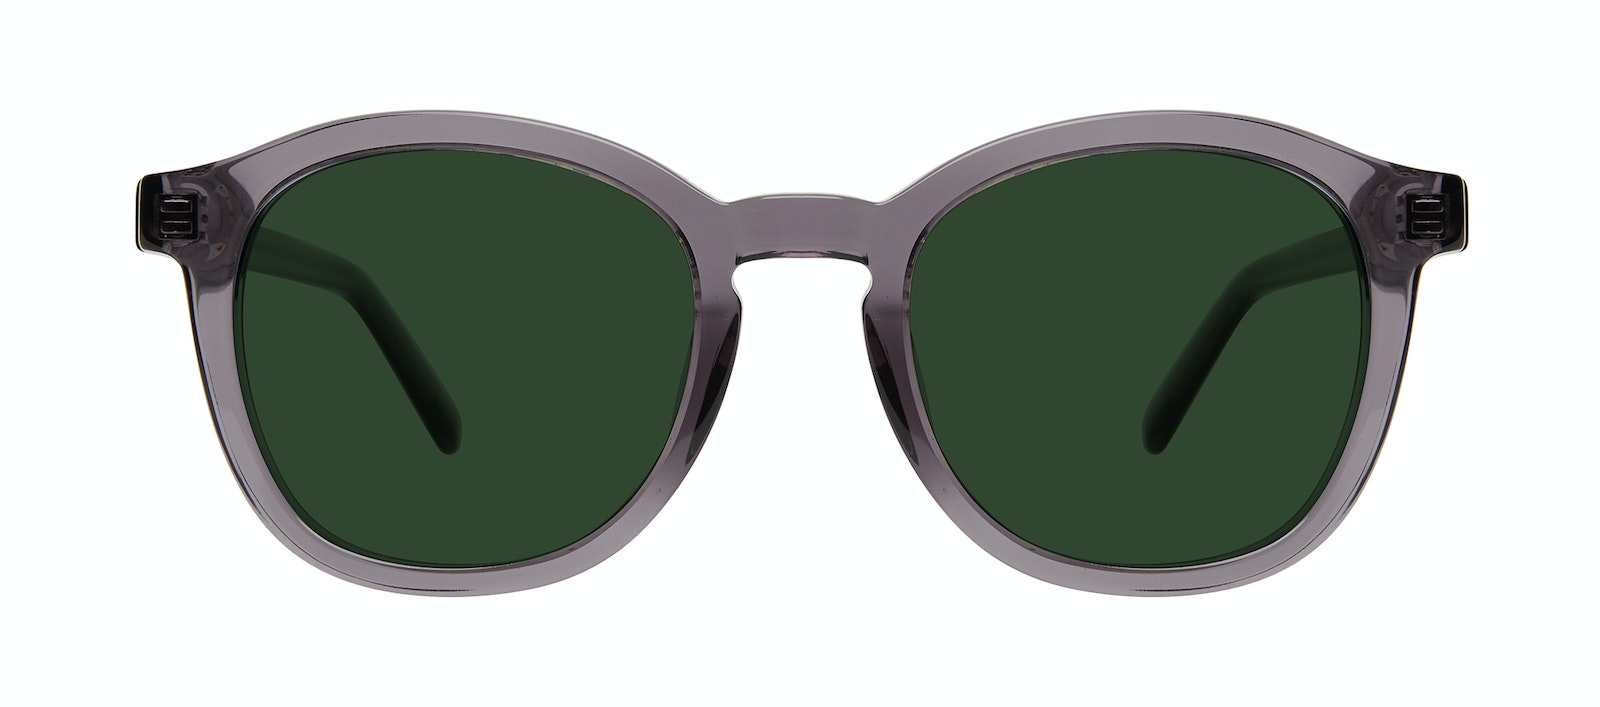 Affordable Fashion Glasses Round Sunglasses Men Script Grey Front